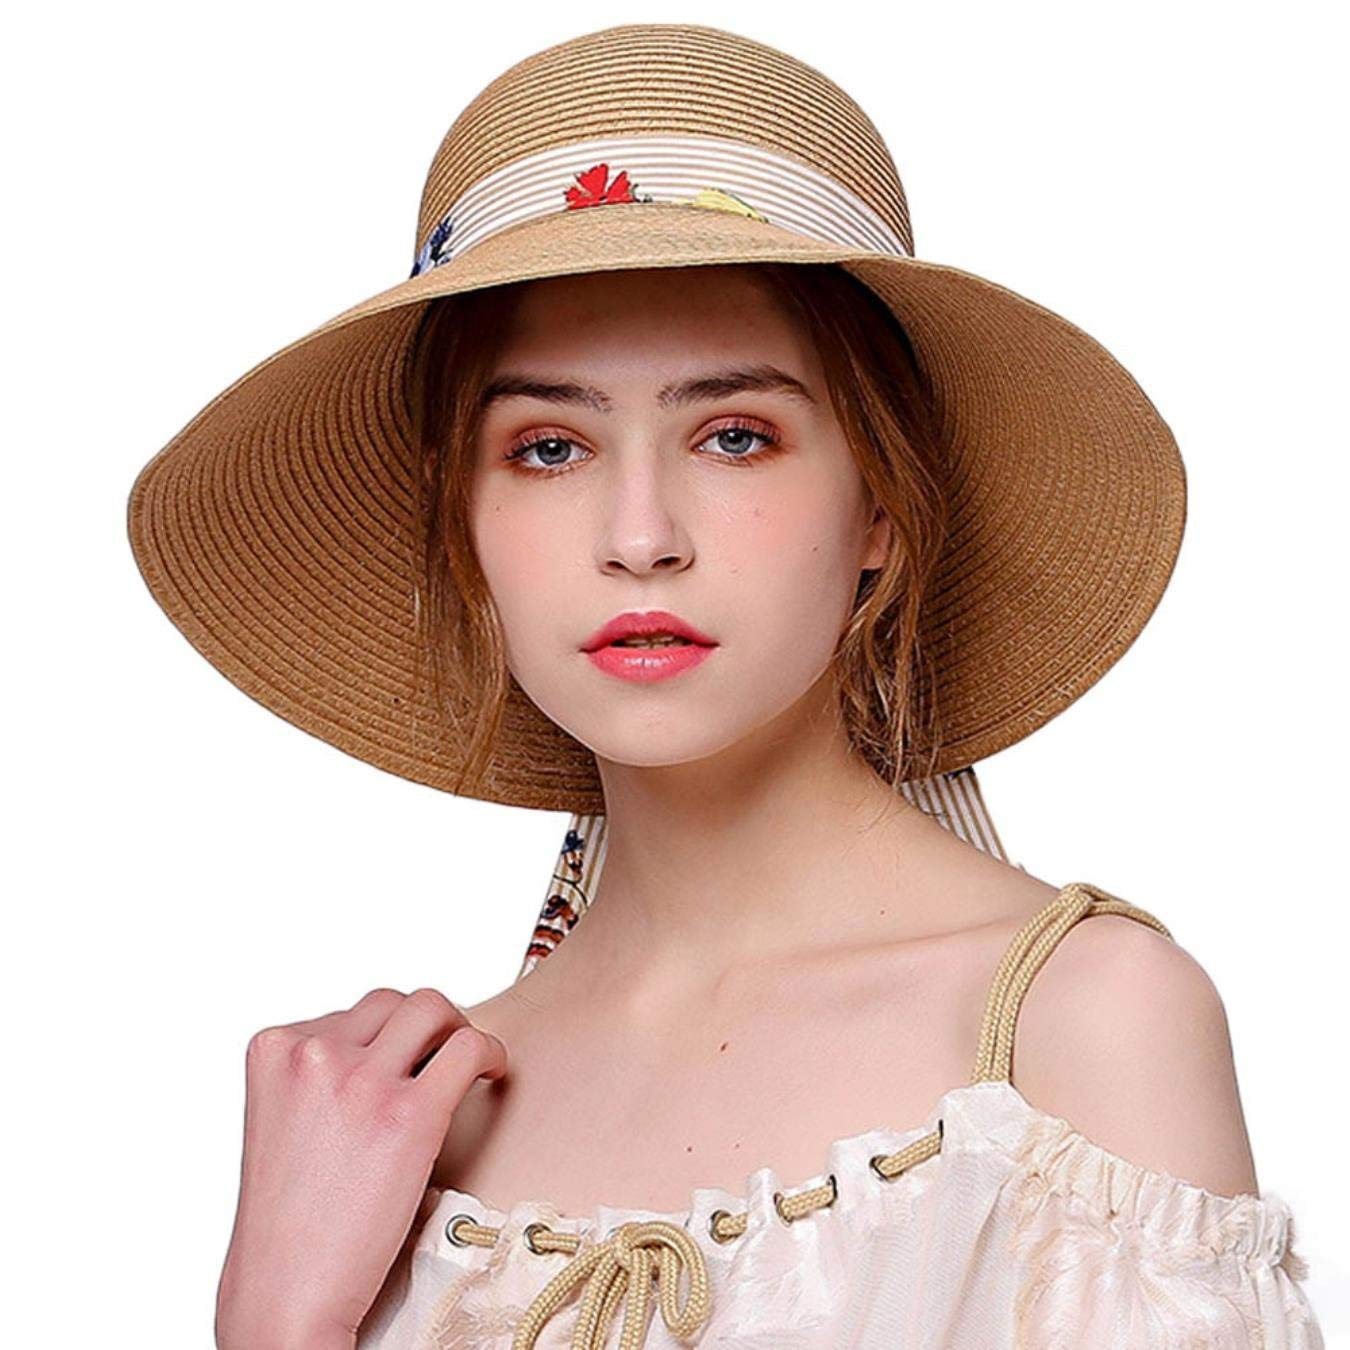 27adea6087a Straw Hat for Women Wide Brim Floppy Sun UV Beach Fashion Hats Cap with  Stripe Ribbon Bowknot Sombreros